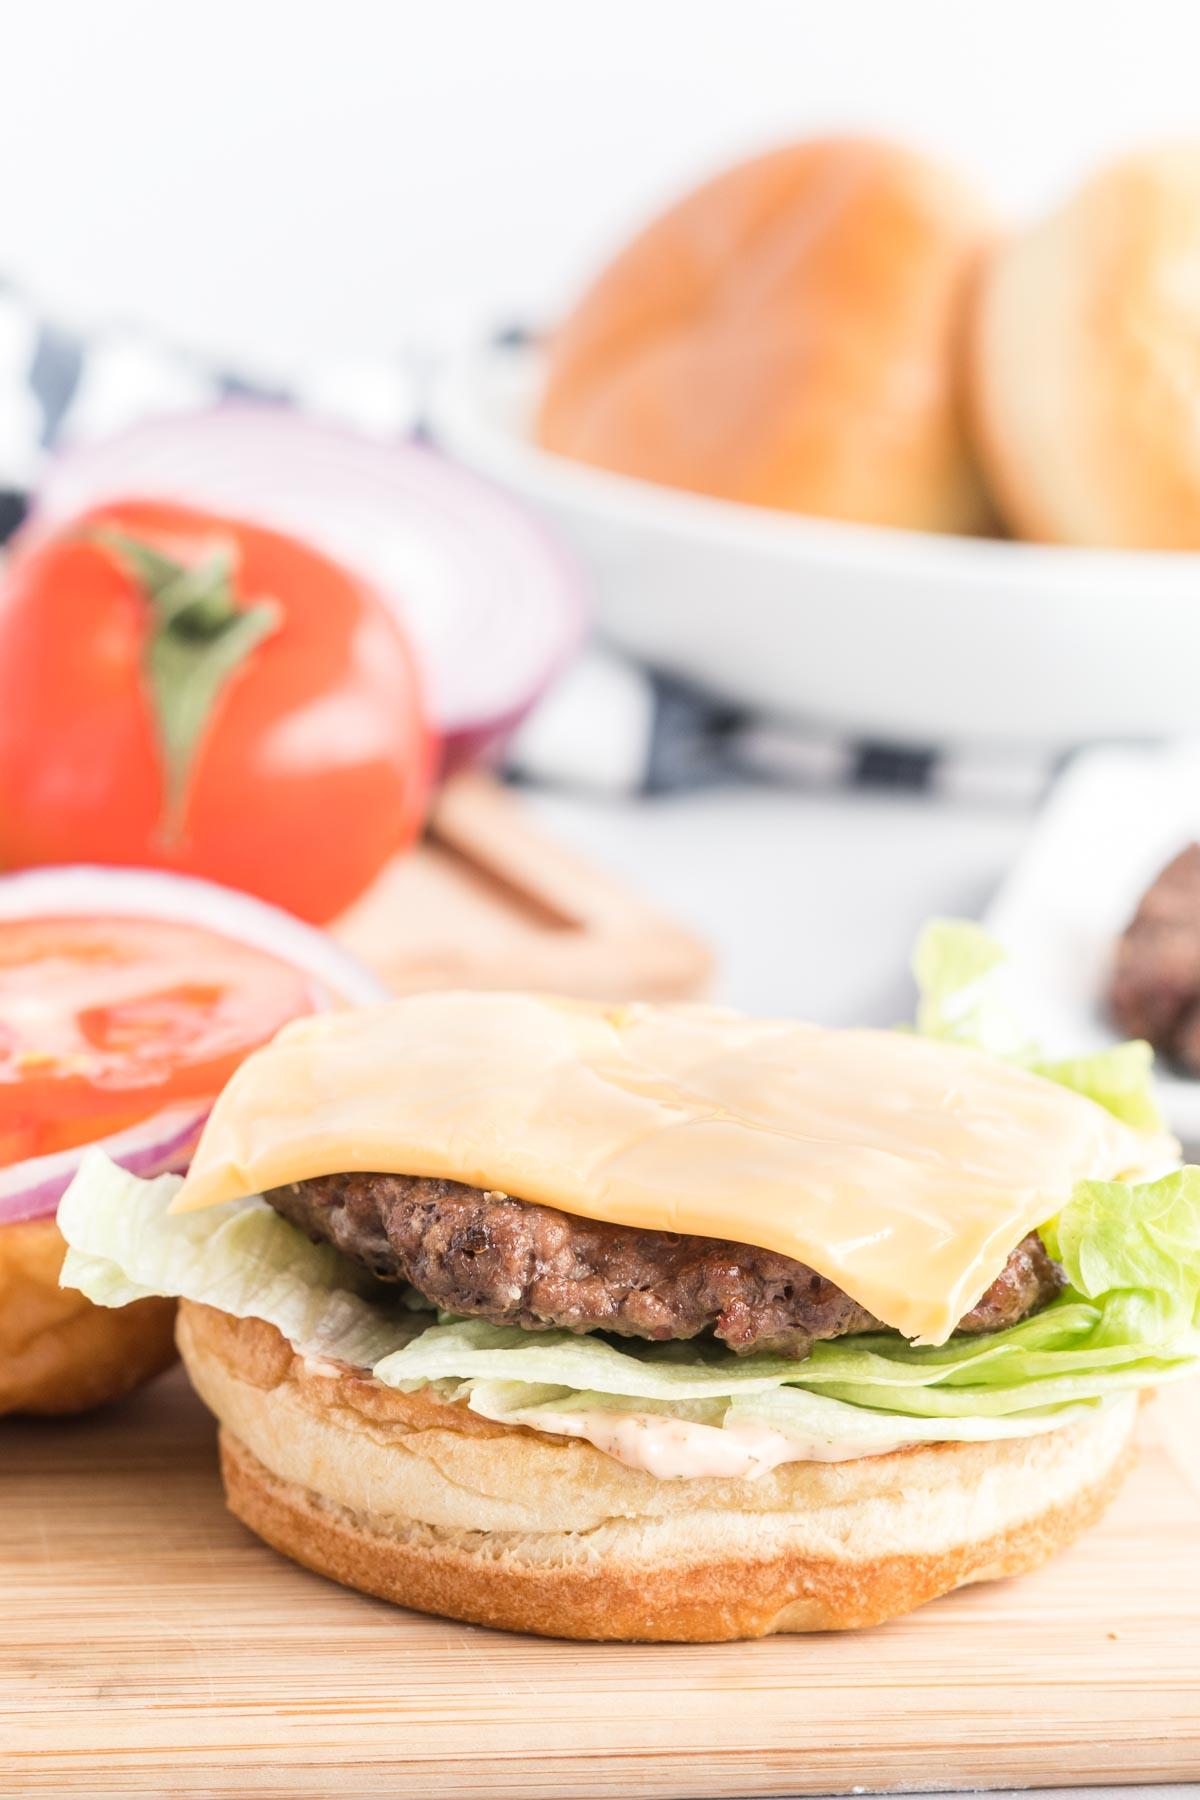 Burger patty on a bottom bun with sauce, lettuce and cheese and a tomato in the background.